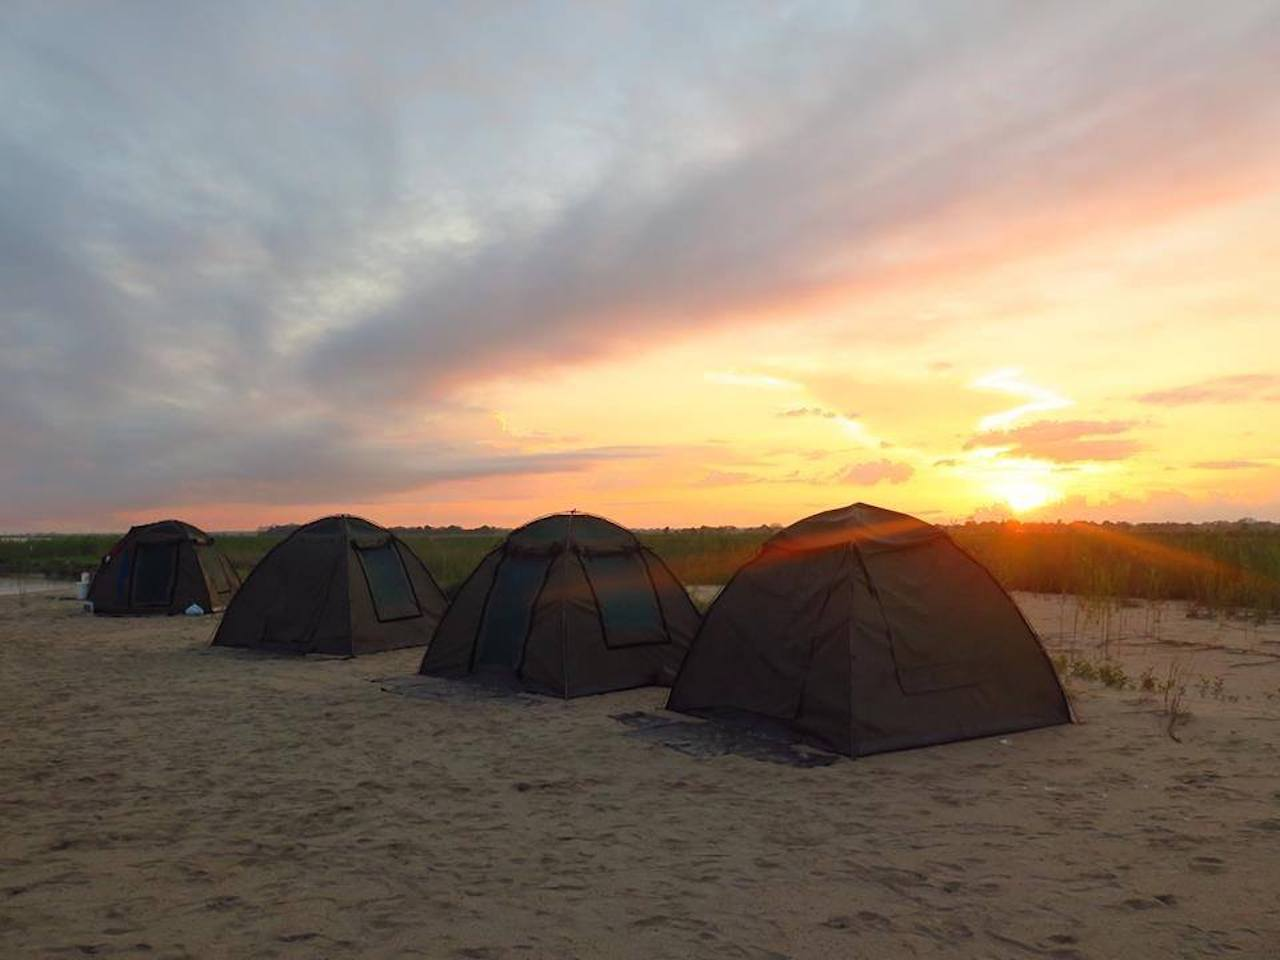 Camping on a solo safari overland tour takes you out of your comfort zone and creates a whole new experience